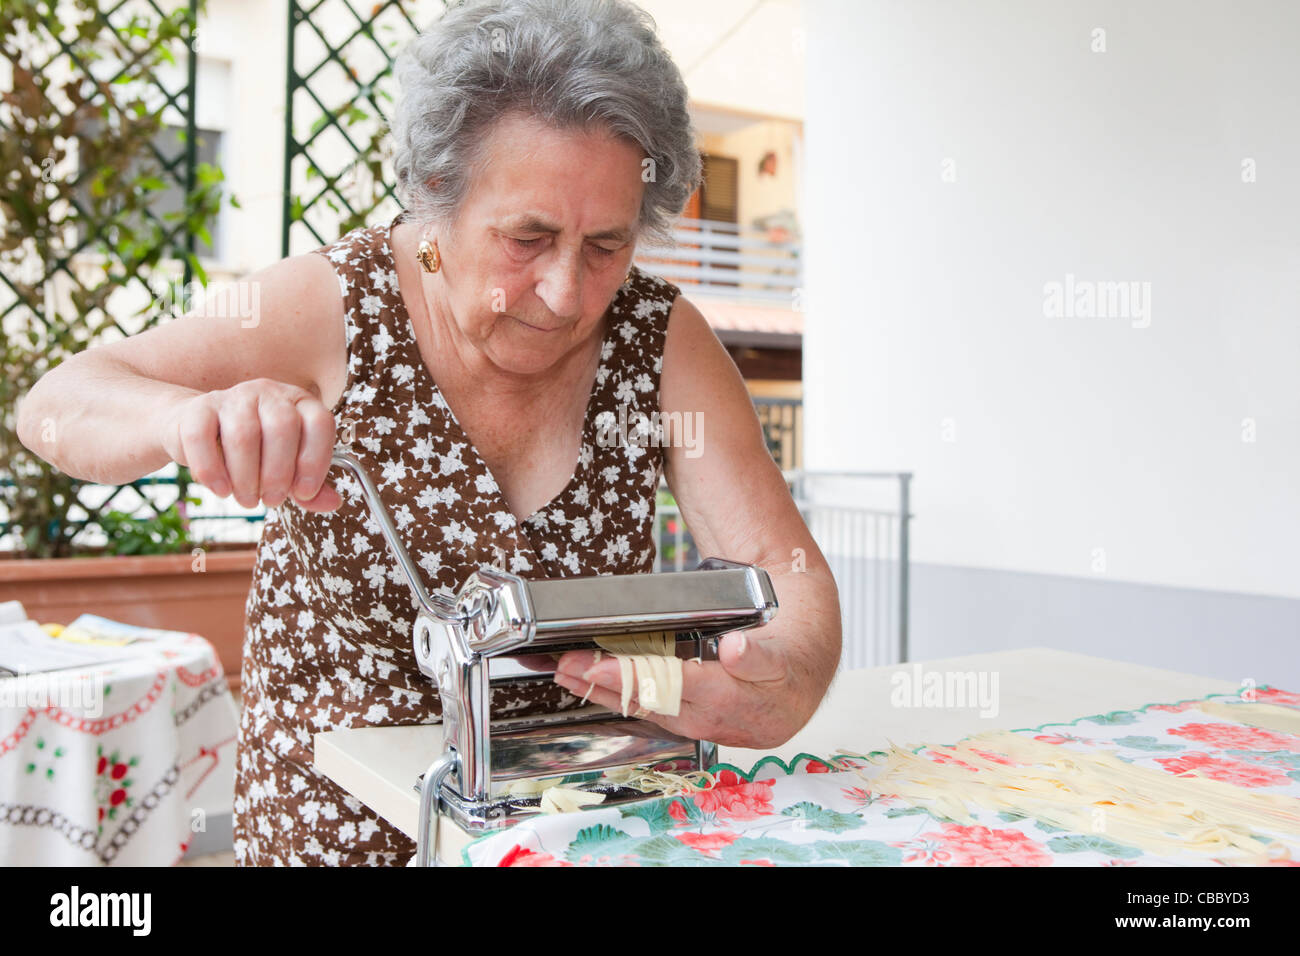 Older woman making pasta with roller - Stock Image